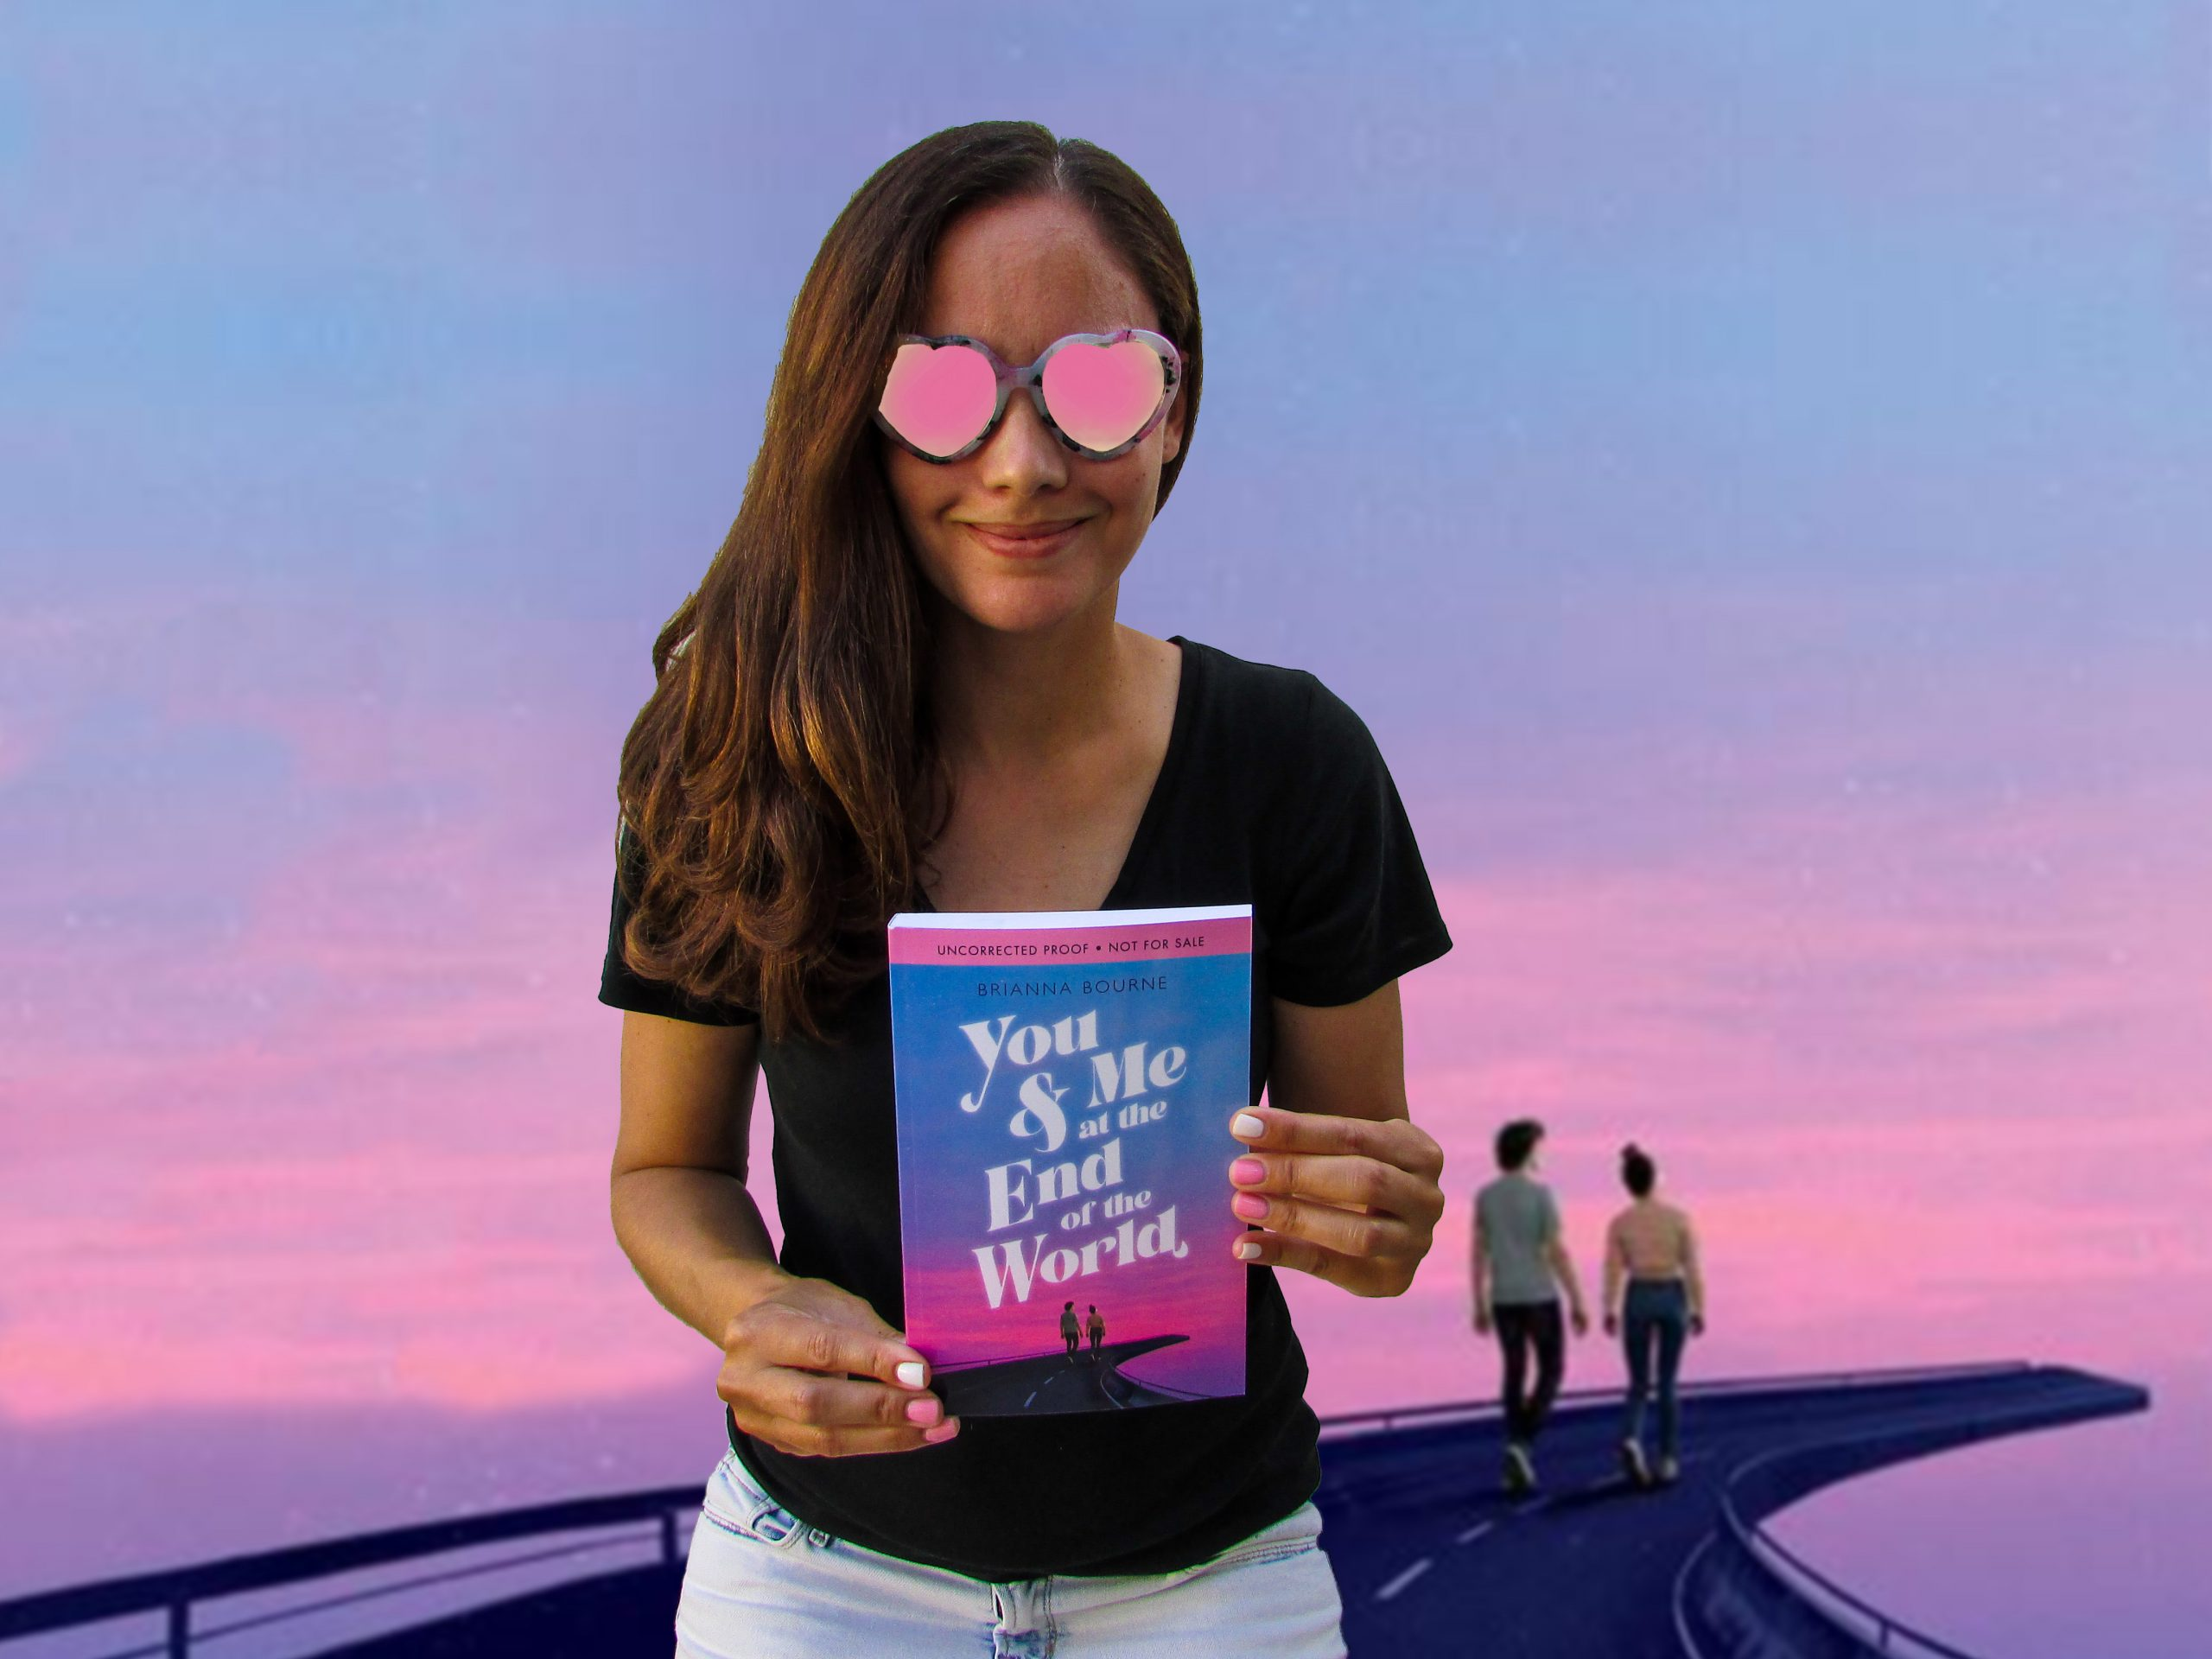 Read more about the article You & Me at the End of the World by Brianna Bourne